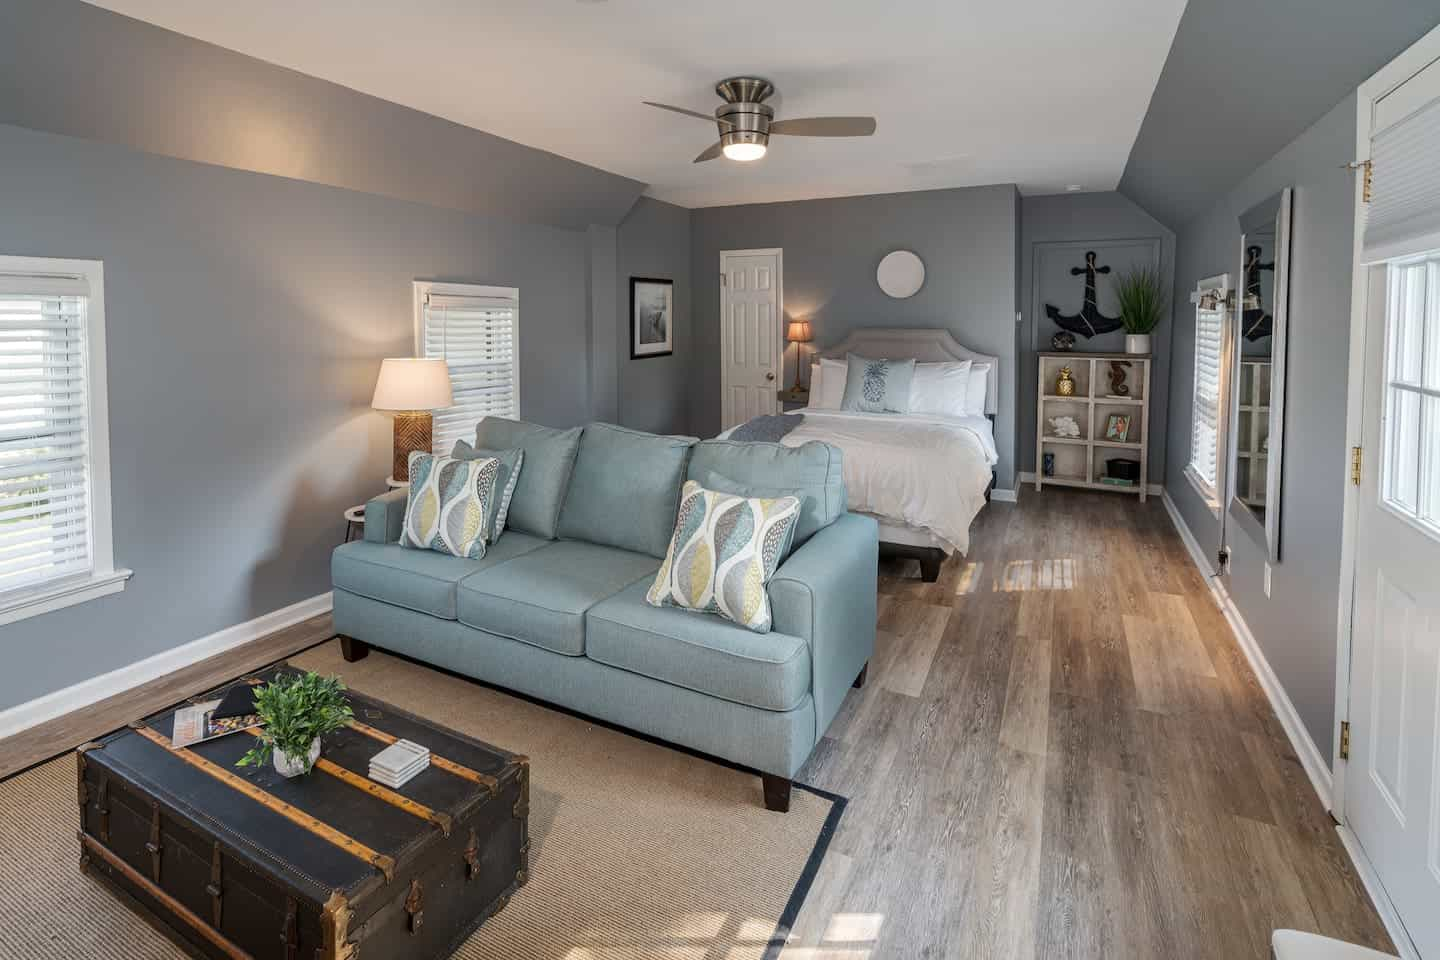 Image of Airbnb rental in Rochester, New York